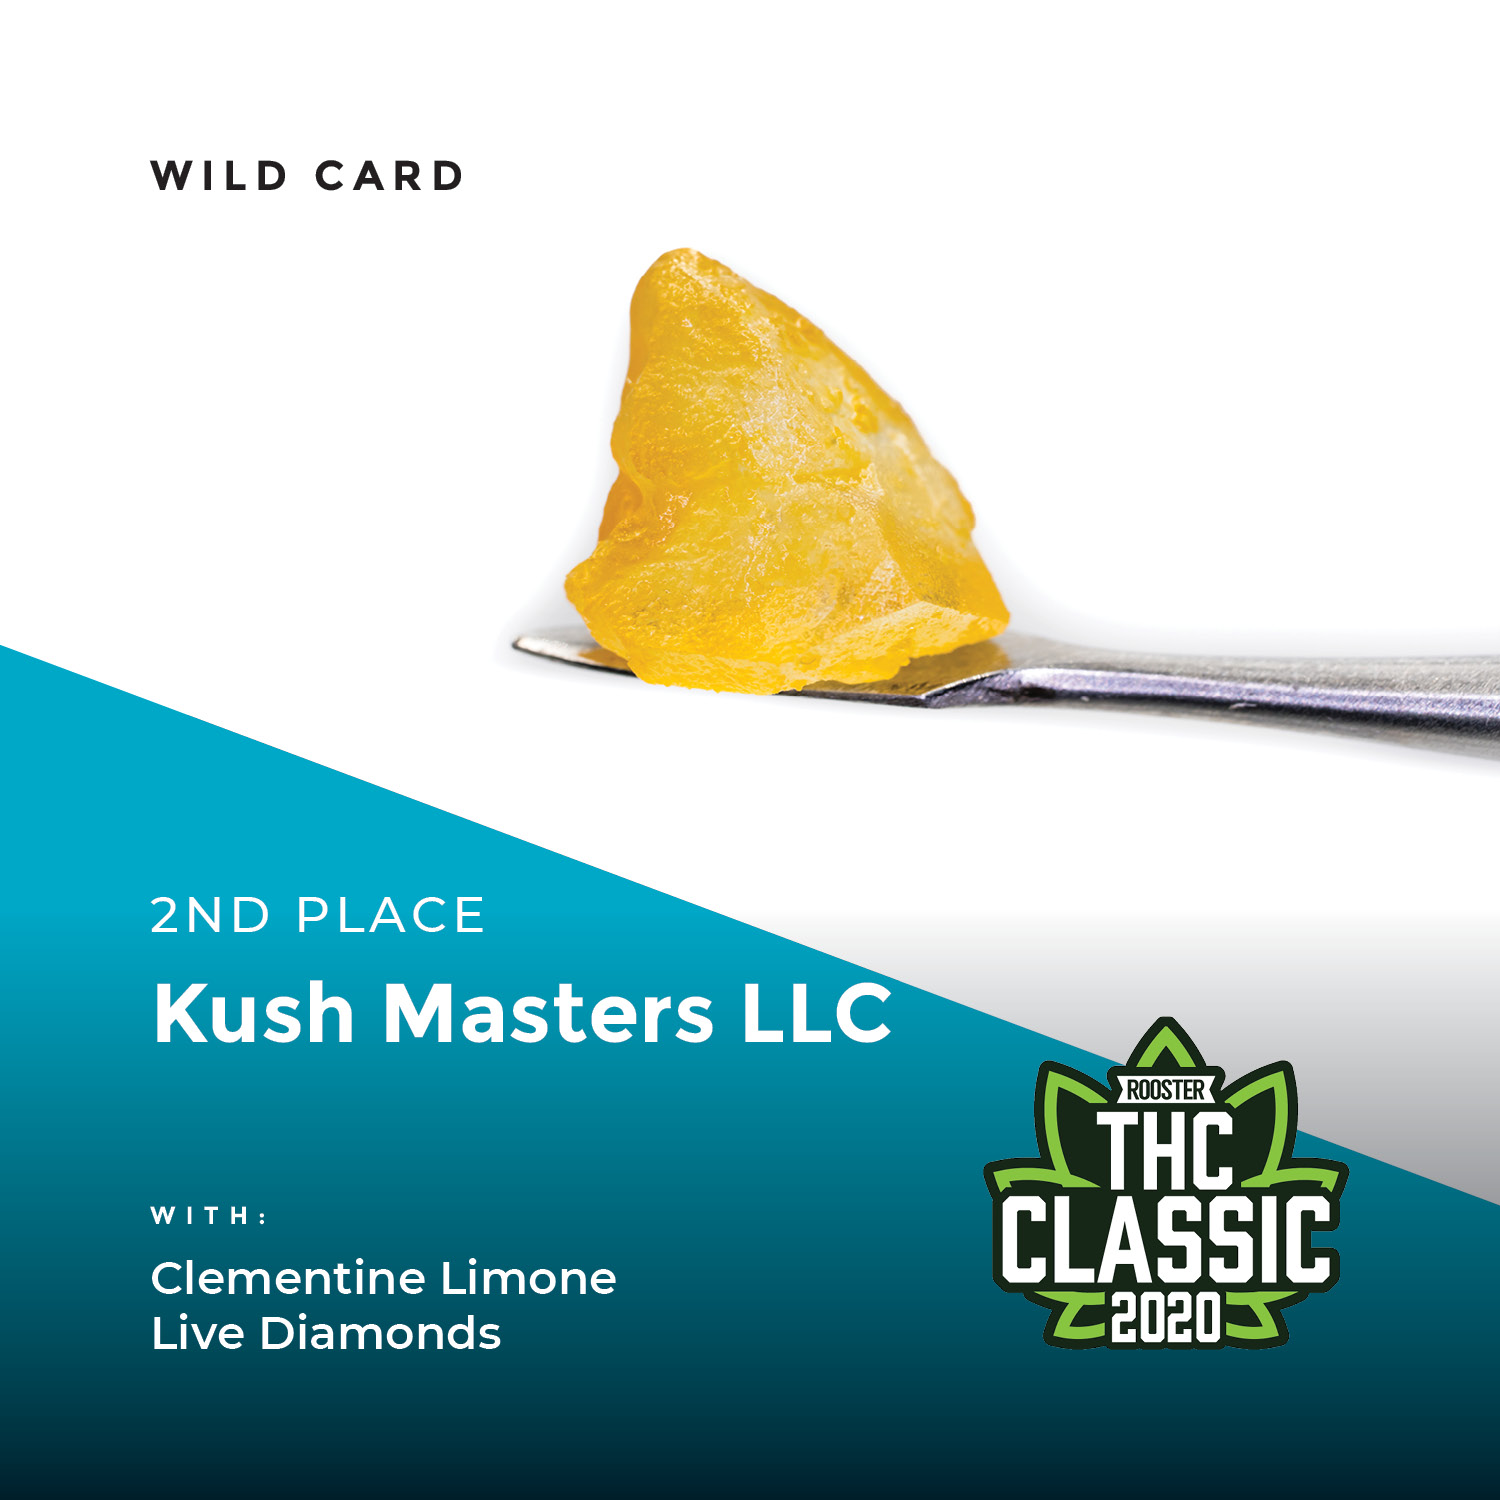 Best Colorado Cannabis Products: wildcard